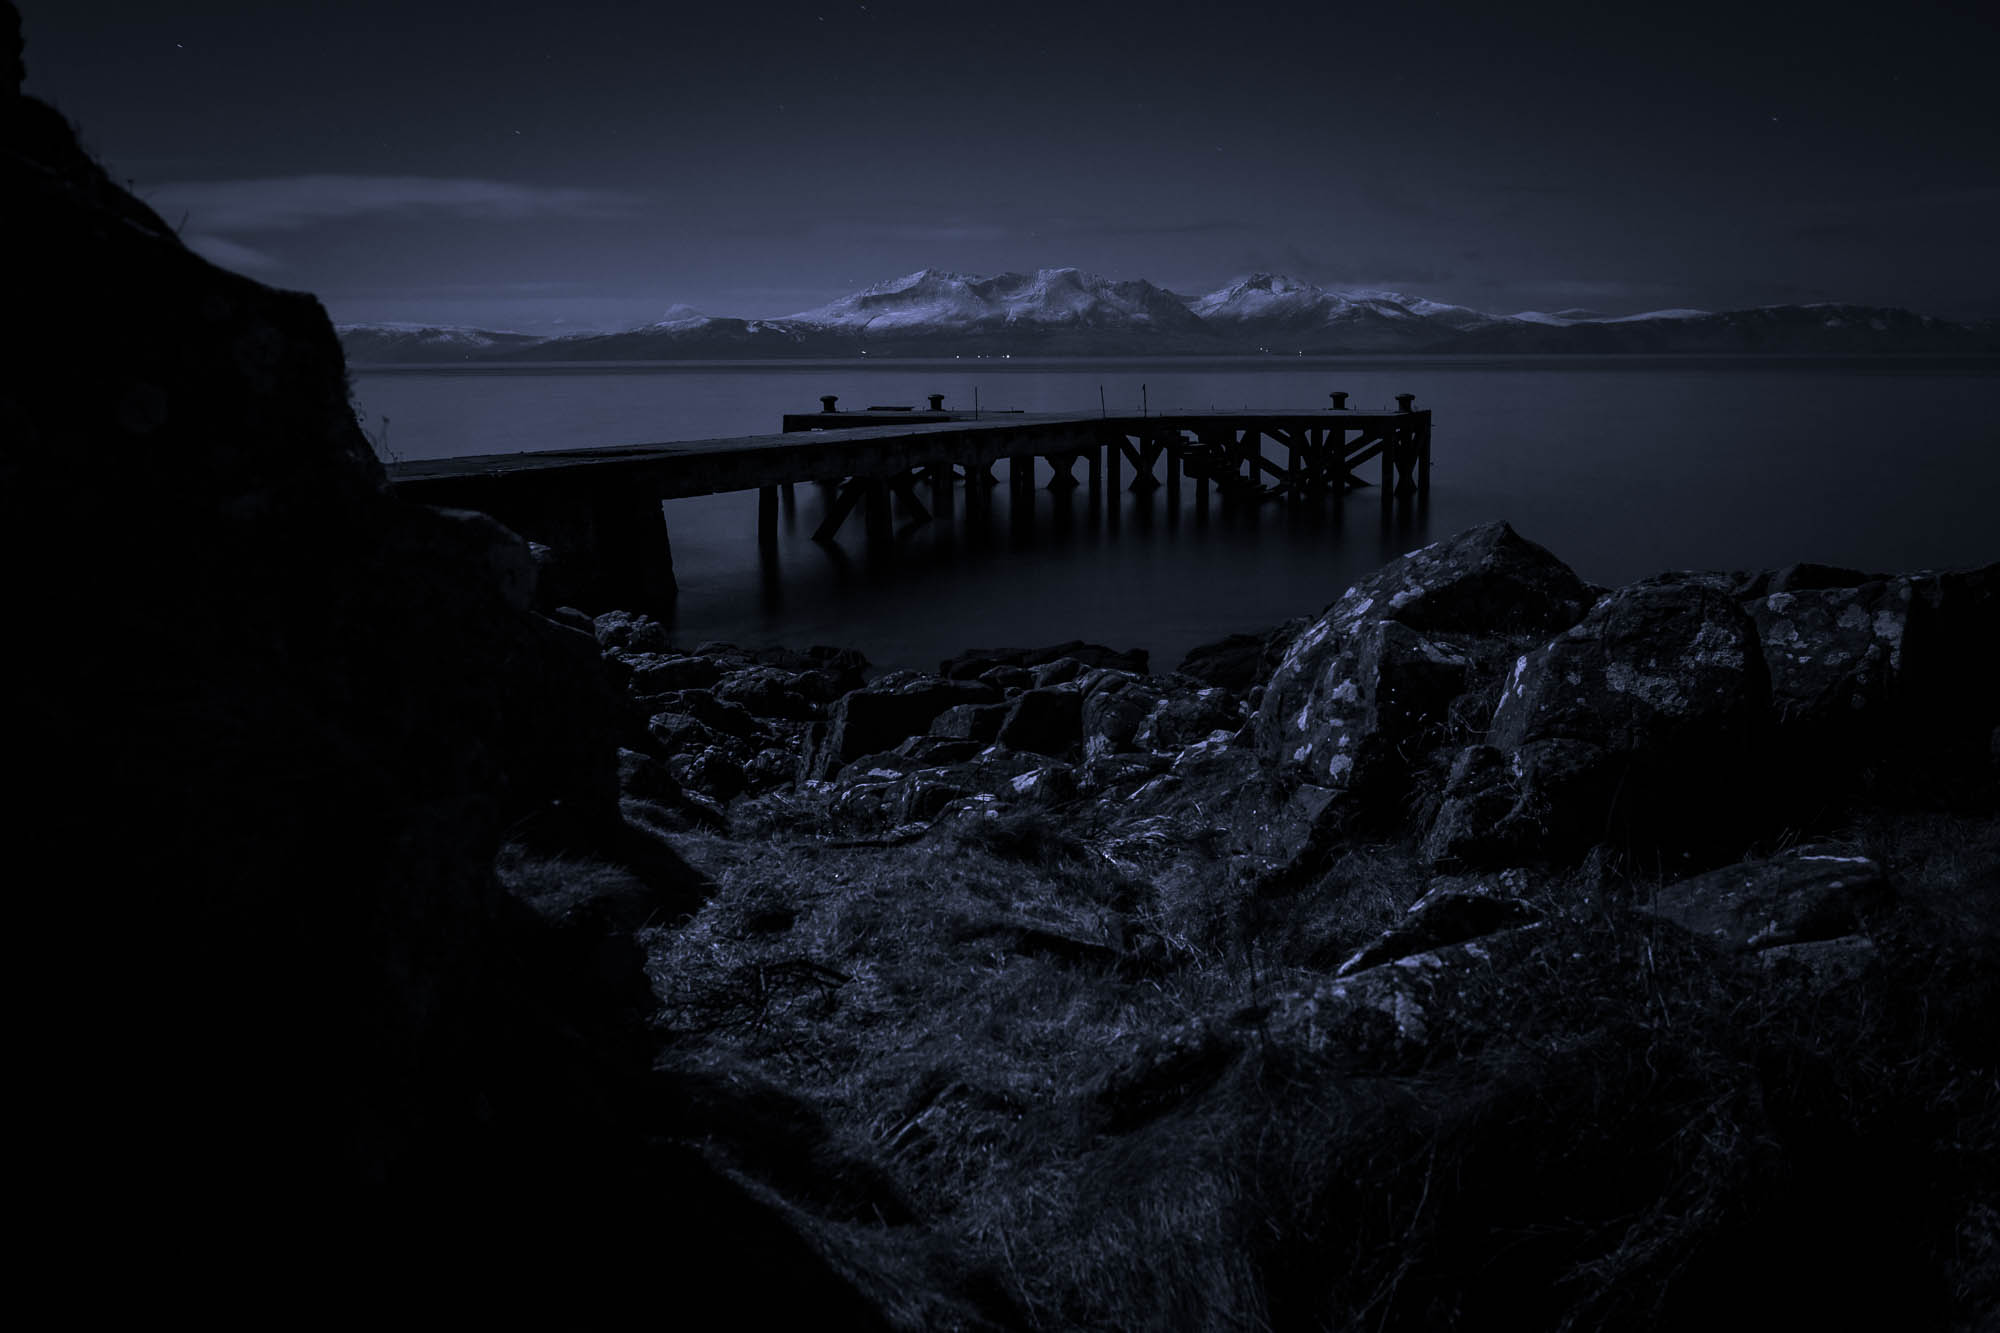 The Ayrshire hamlet of Portencross at night, looking out to the old pier, with the Isle of Arran in the distance. The sole light source is moonlight.